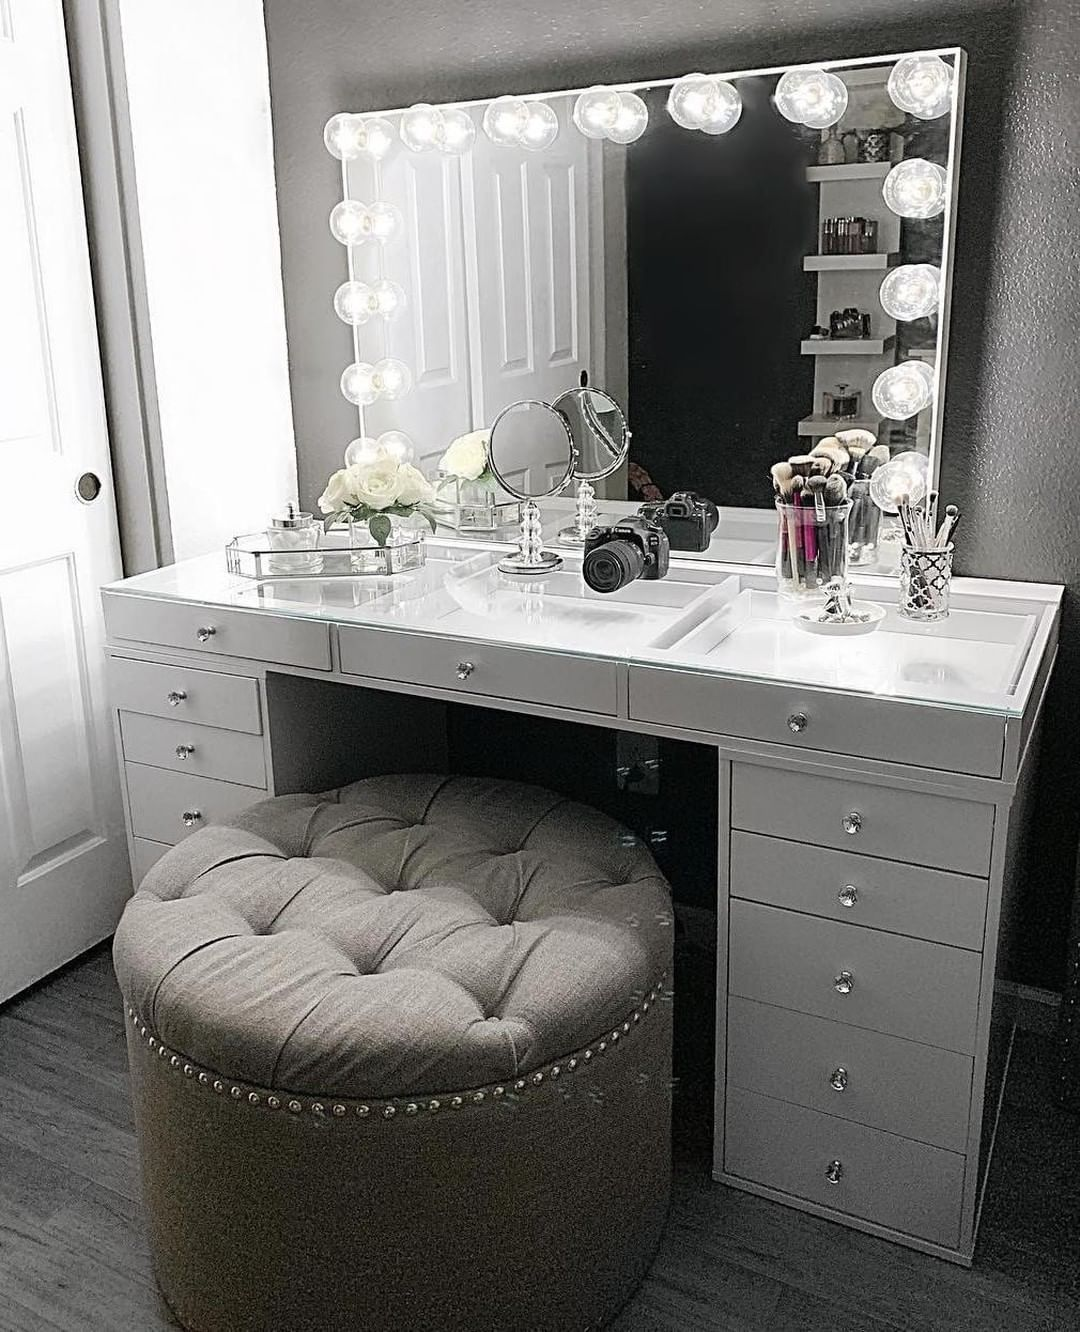 SlayStation® Pro 2.0 Tabletop + Vanity Mirror + 5 Drawer